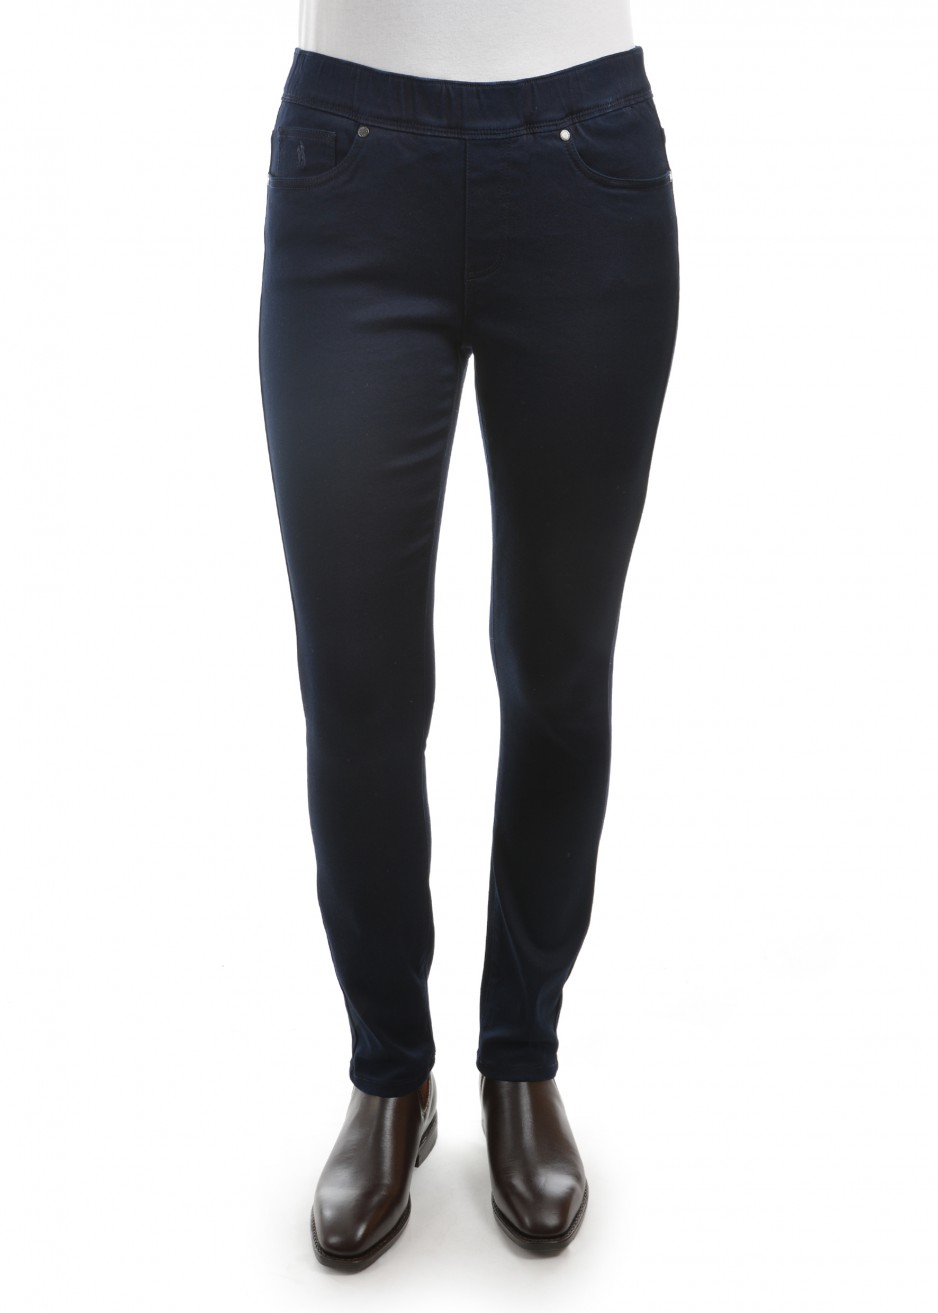 WOMENS NO FUSS PULL-ON SLIM LEG WONDER JEAN 30 LEG